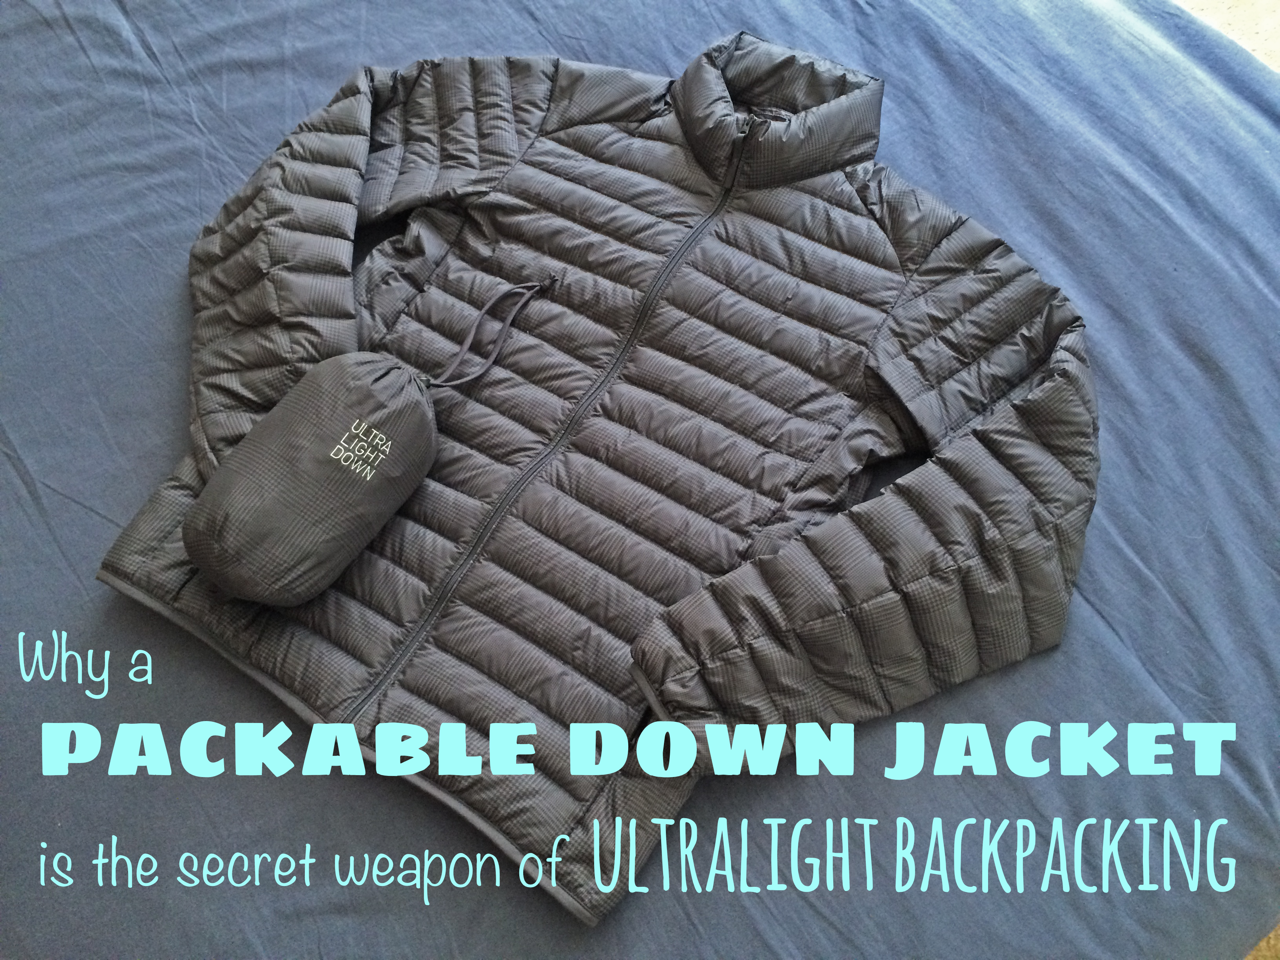 Why A Packable Down Jacket Is The Secret Weapon Of